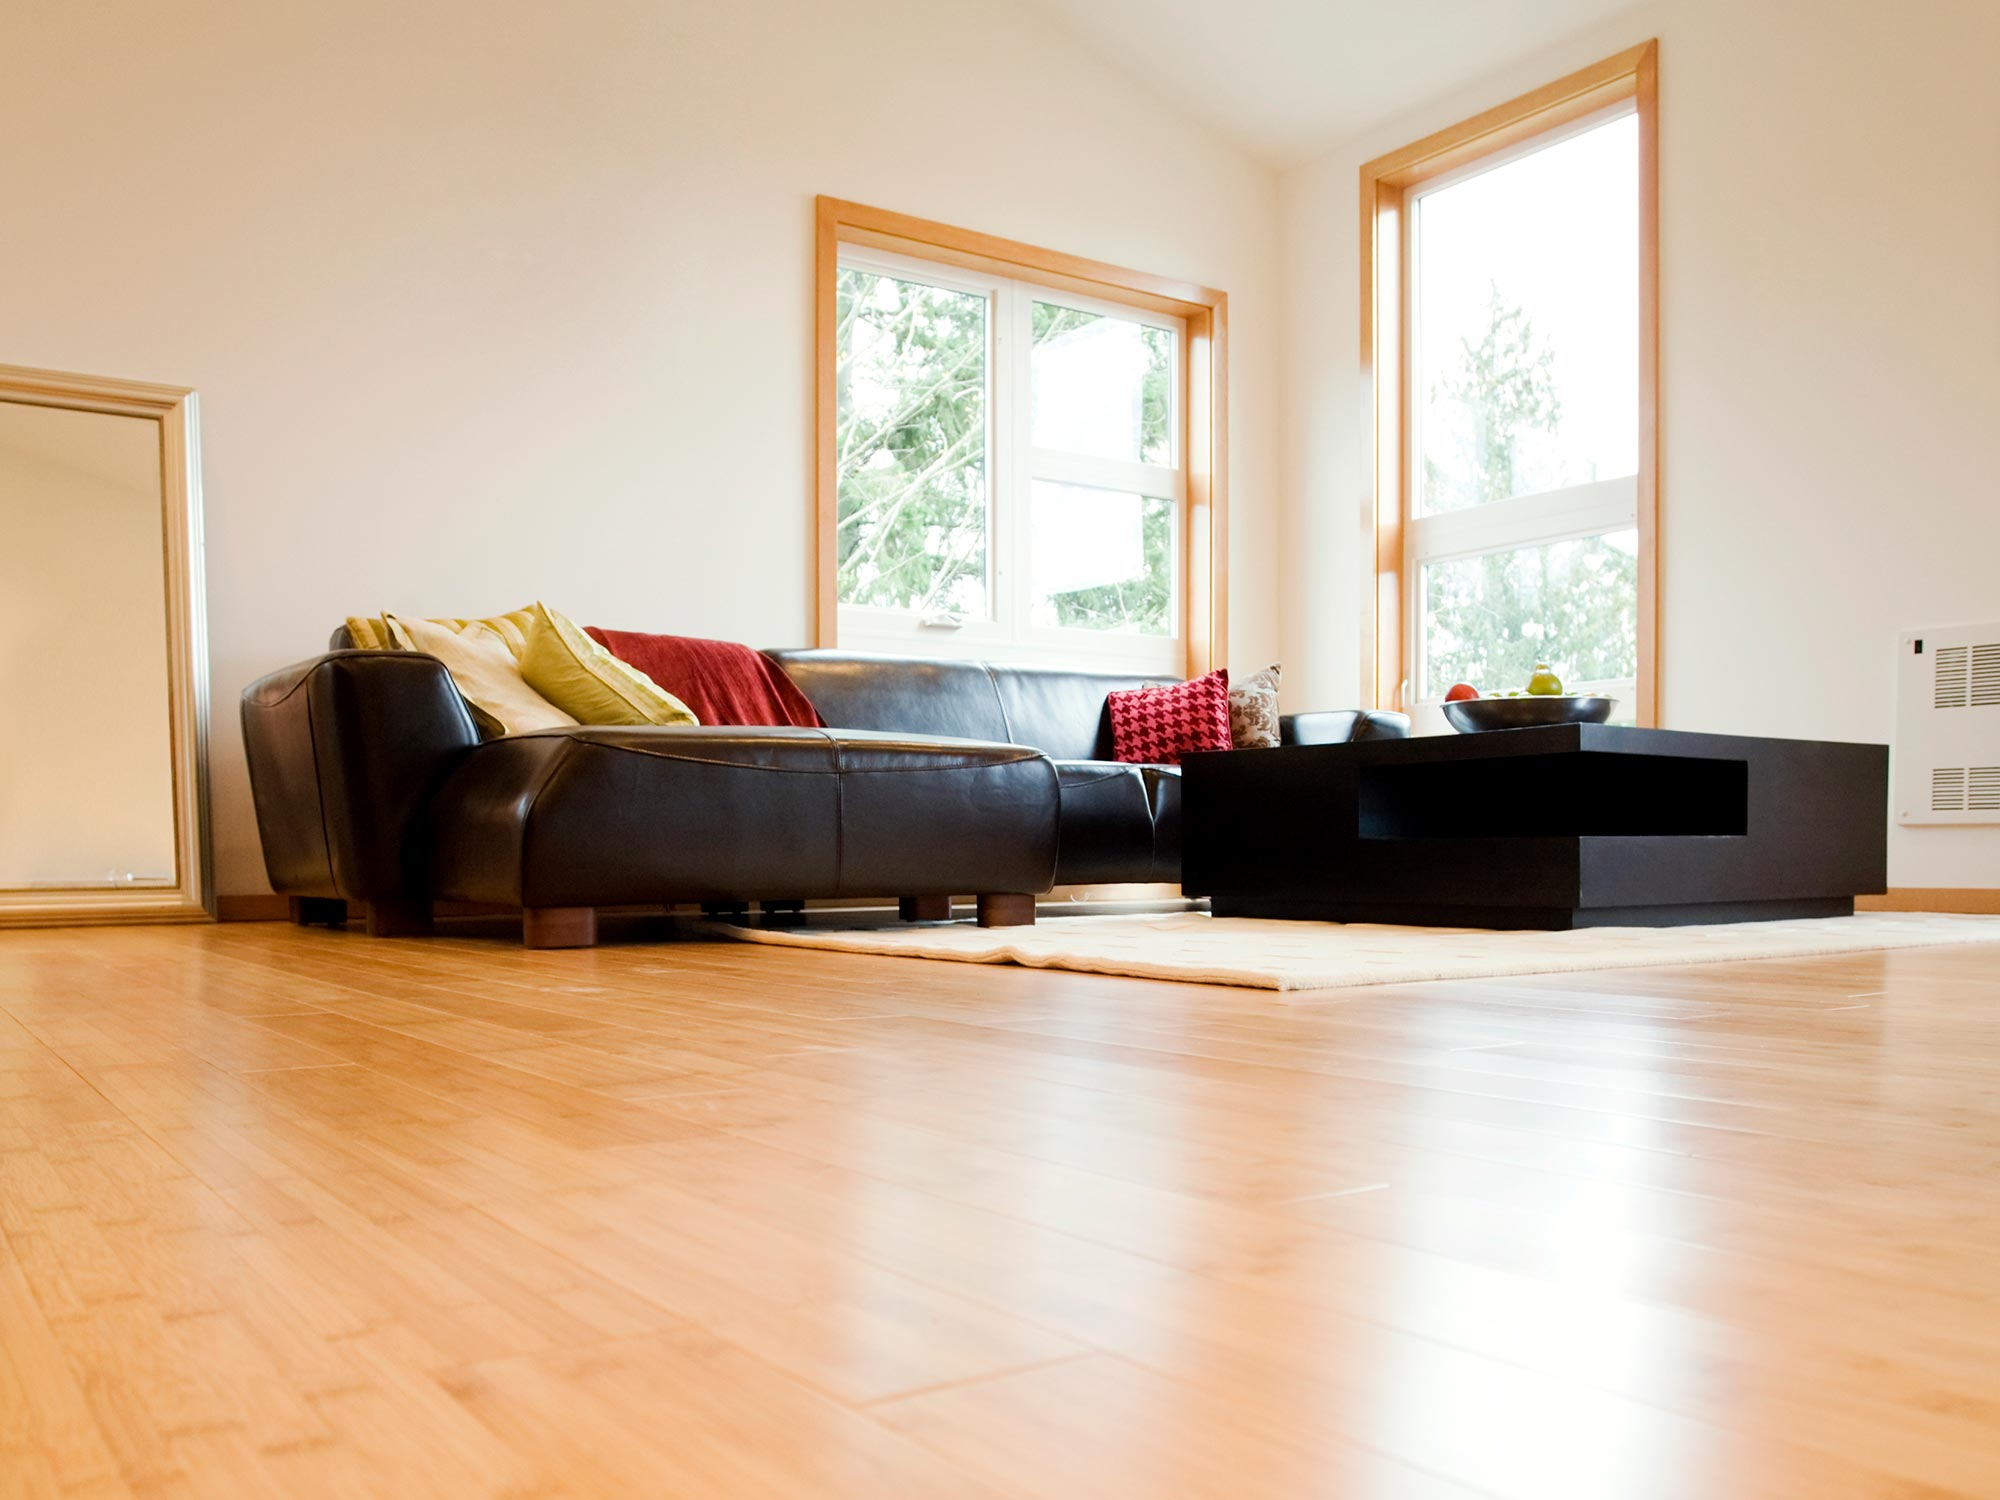 Bamboo Flooring Canberra How To Choose The Right Flooring For Your Home